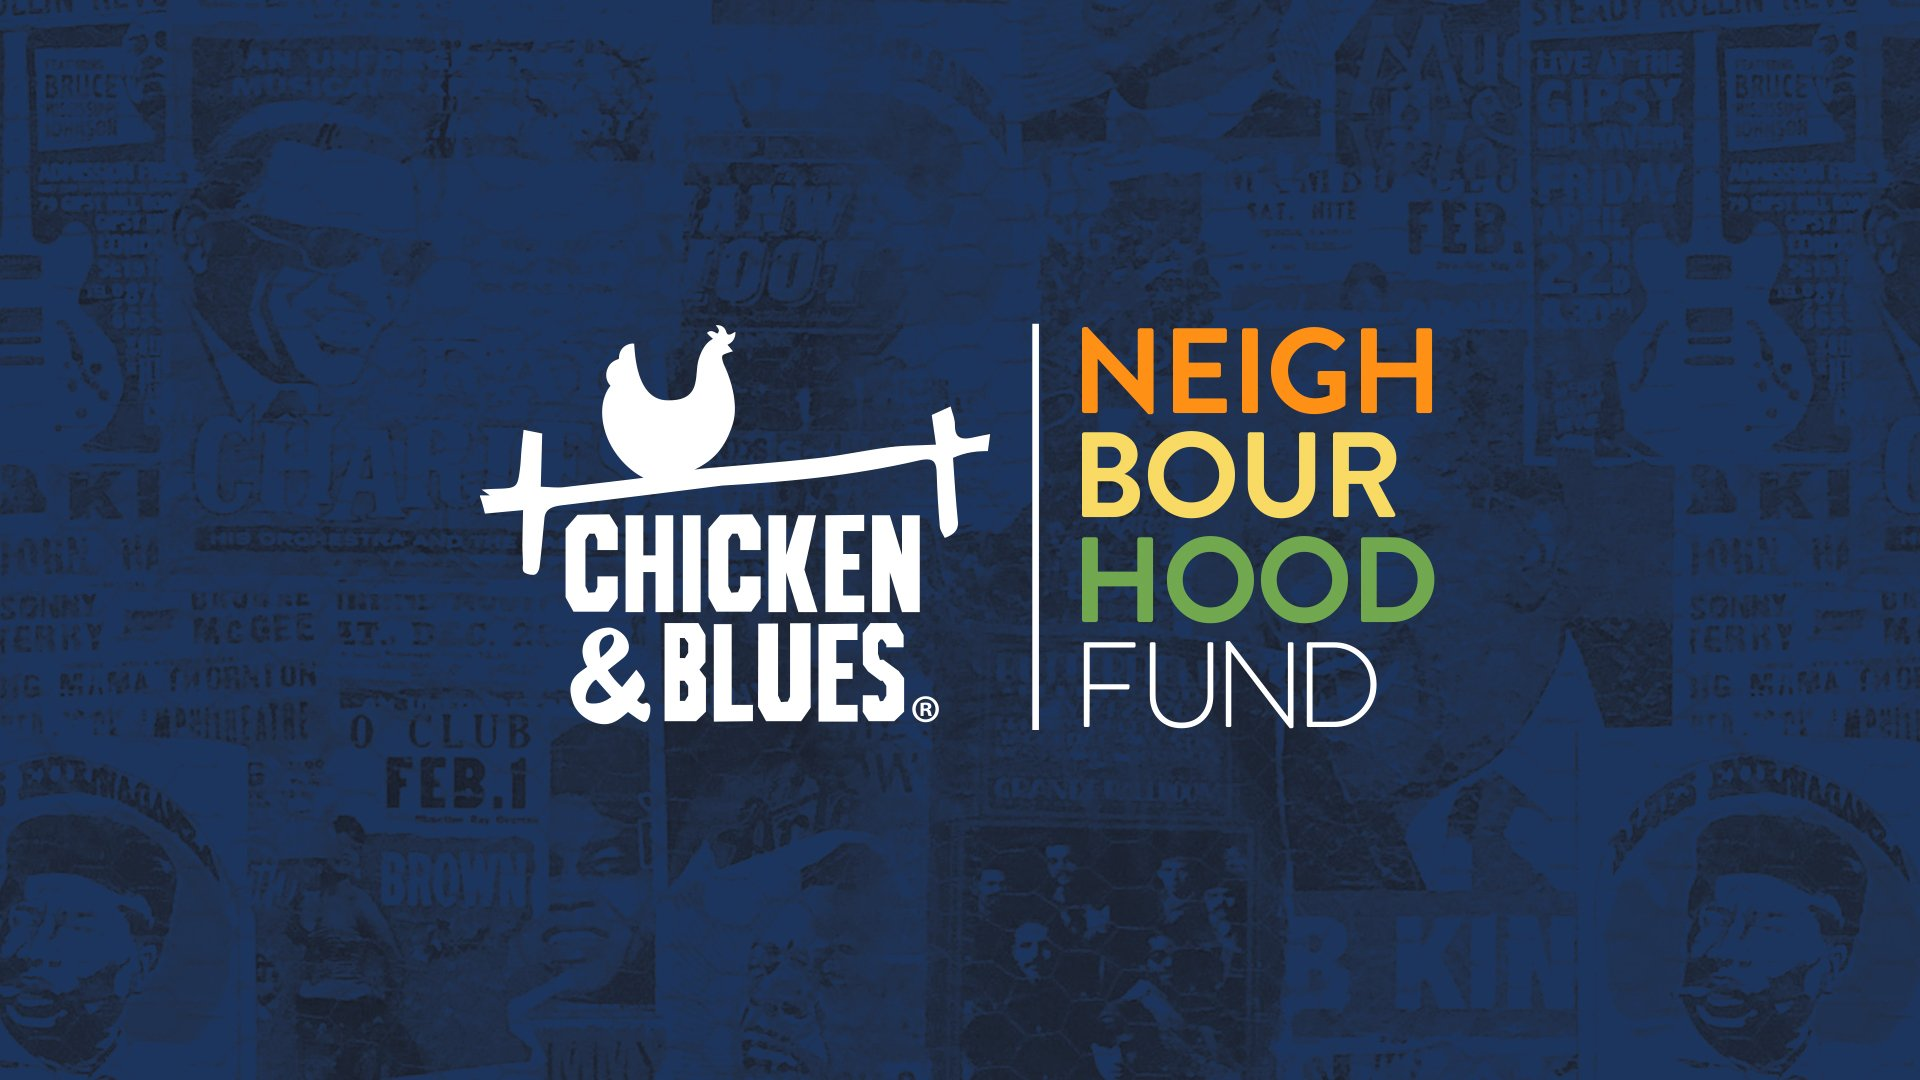 C&B announces £5,000 commitment and the launch of its 2021 'Chicken & Blues Neighbourhood Fund'